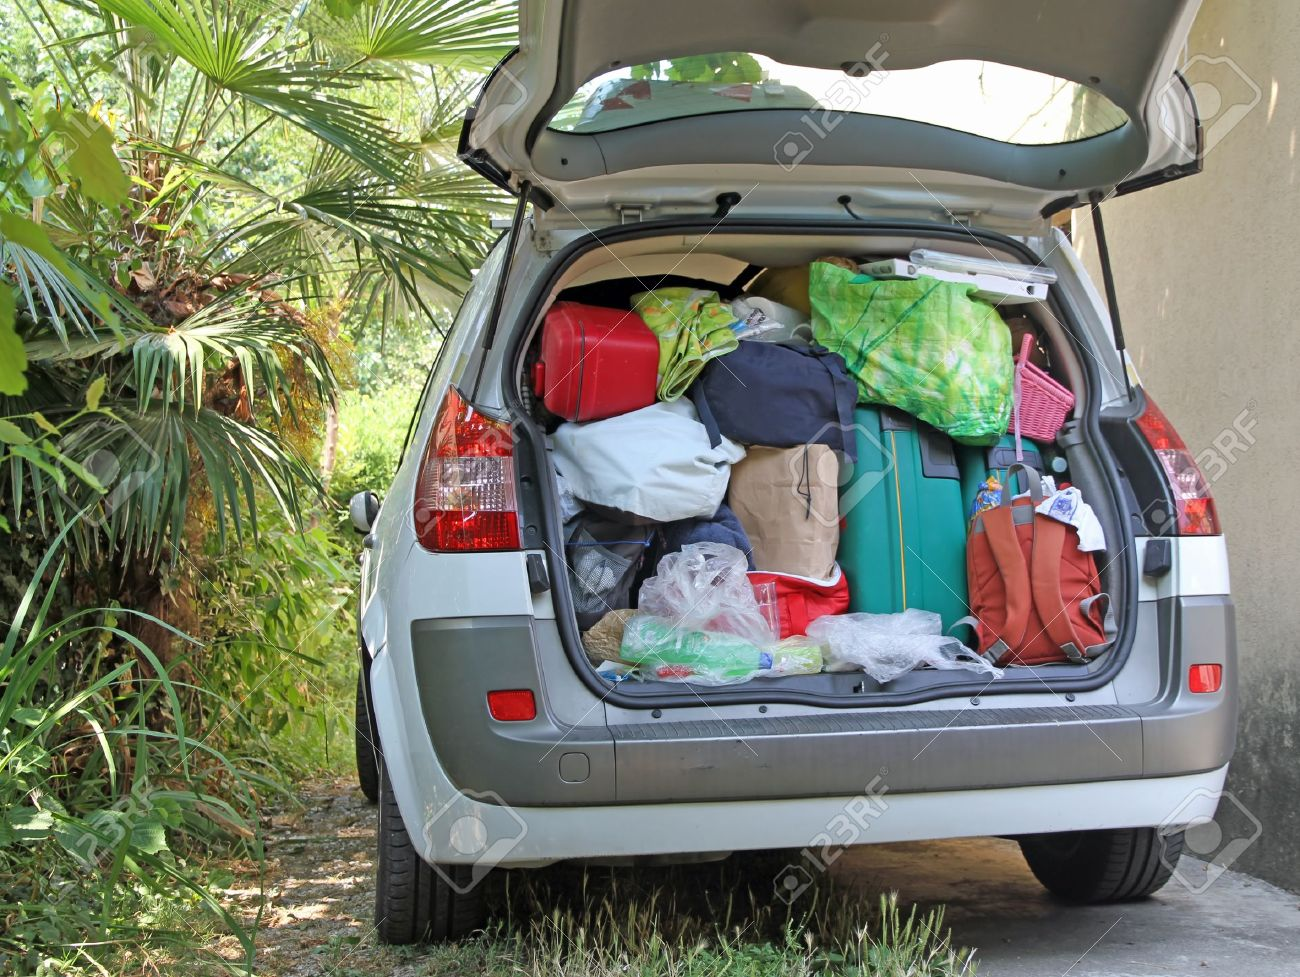 Car Very Full Of Suitcases And Bags Before Leaving For Summer Vacation Stock Photo